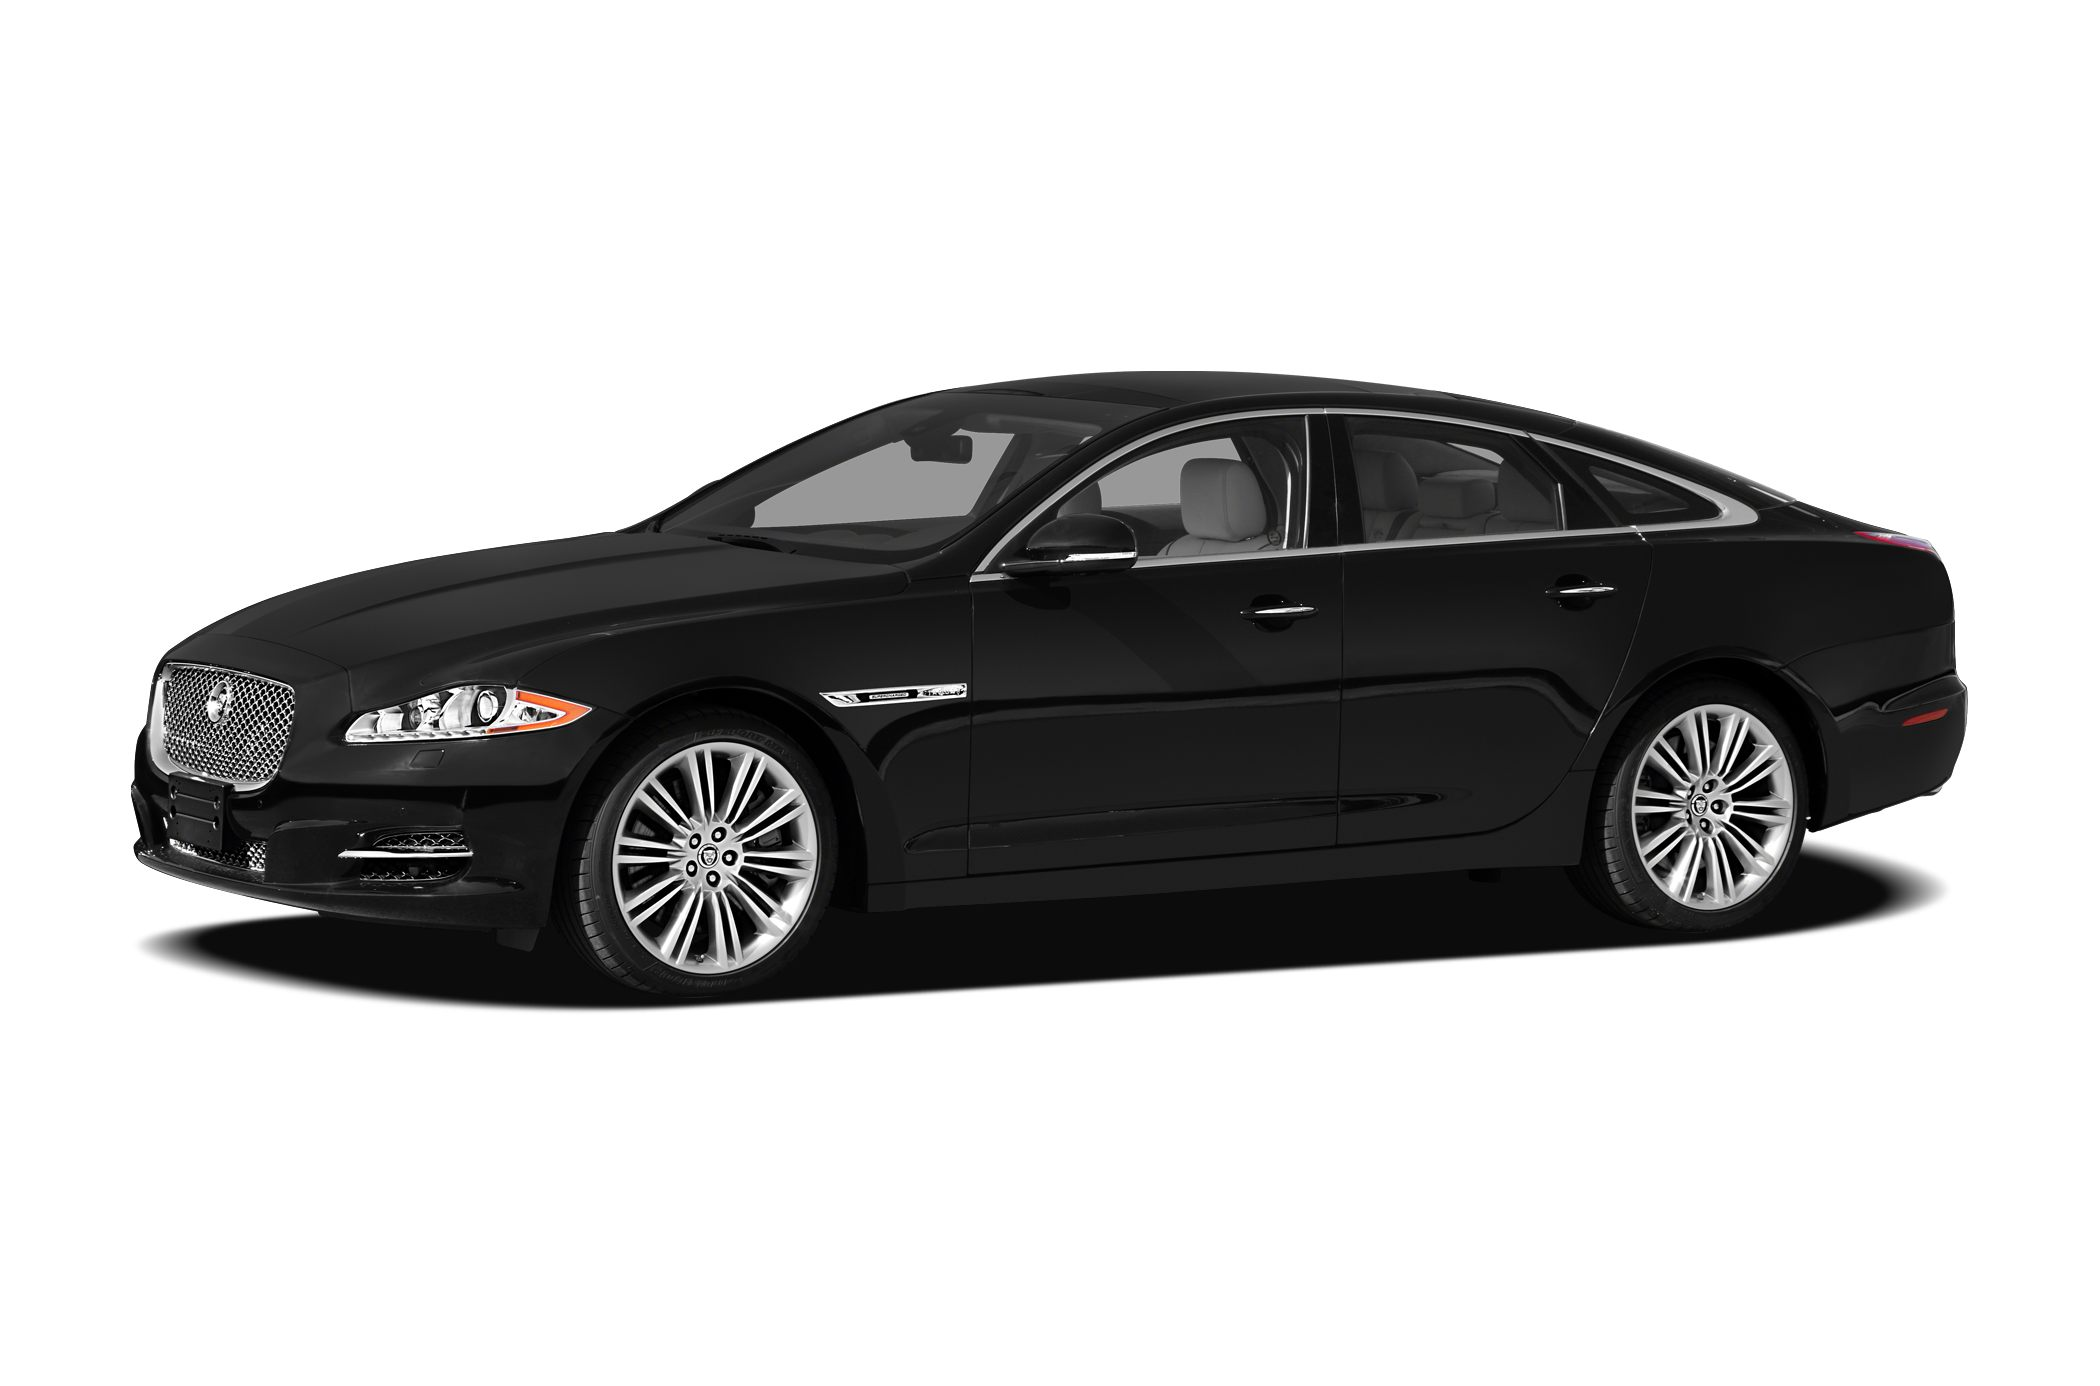 2011 Jaguar XJ Supercharged Sedan for sale in Broomfield for $45,999 with 20,348 miles.